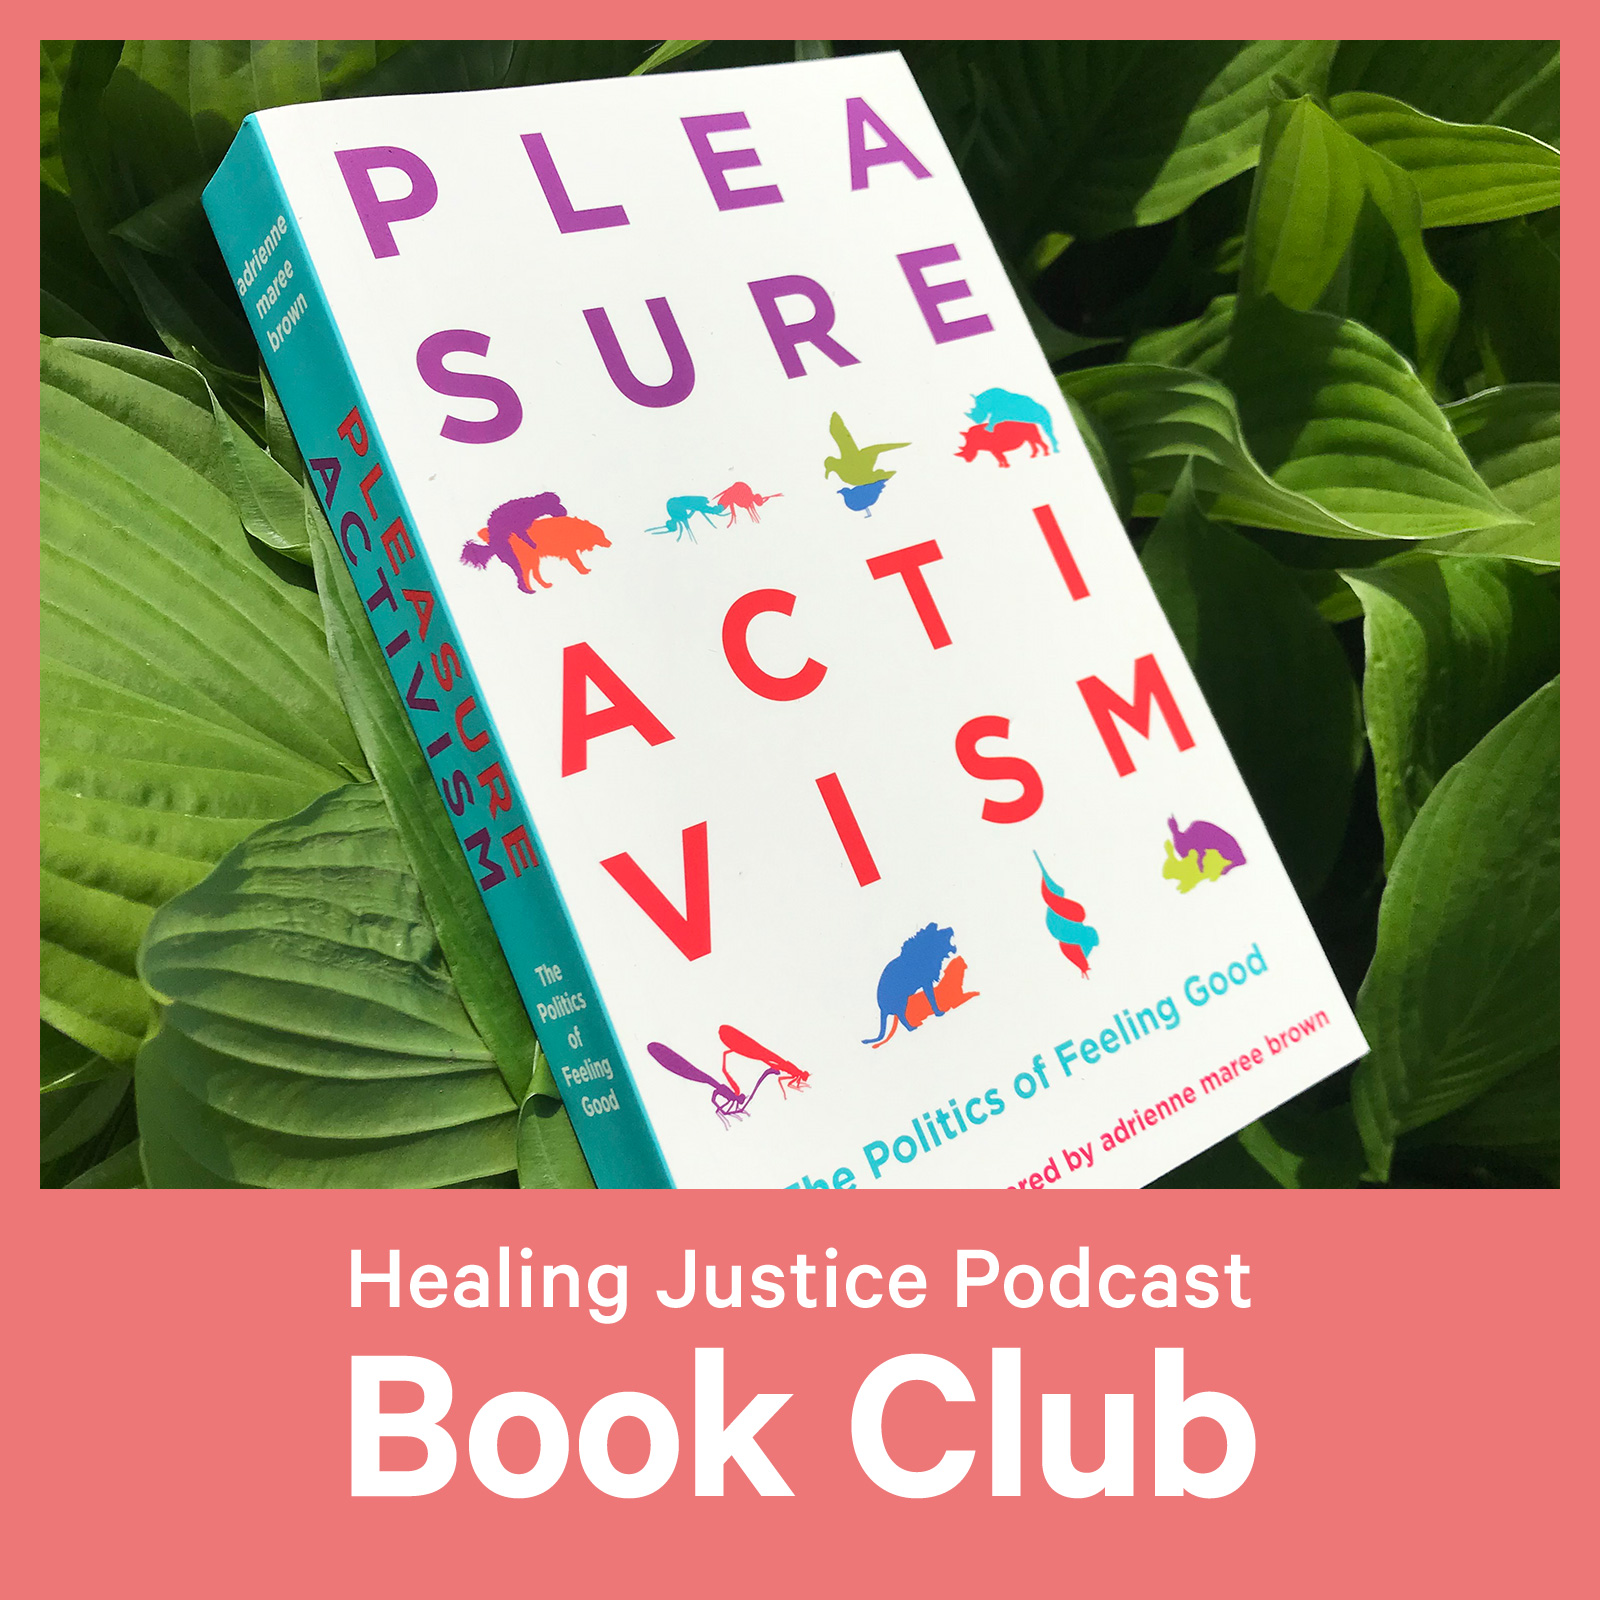 You're invited to BOOK CLUB!